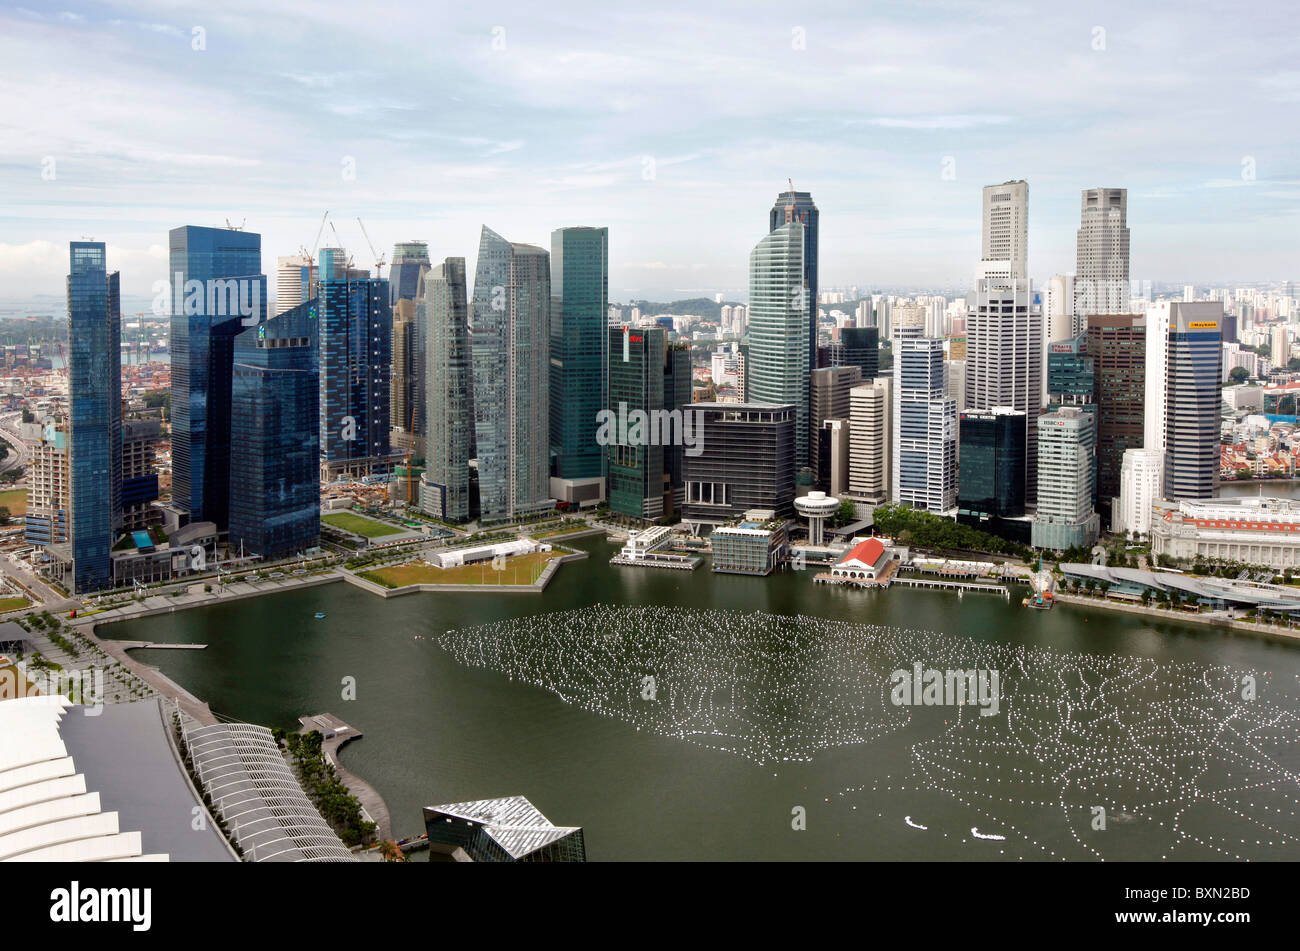 Singapore Marina Bay and skyline of the financial district view from top of Marina Bay Sands Hotel - Stock Image